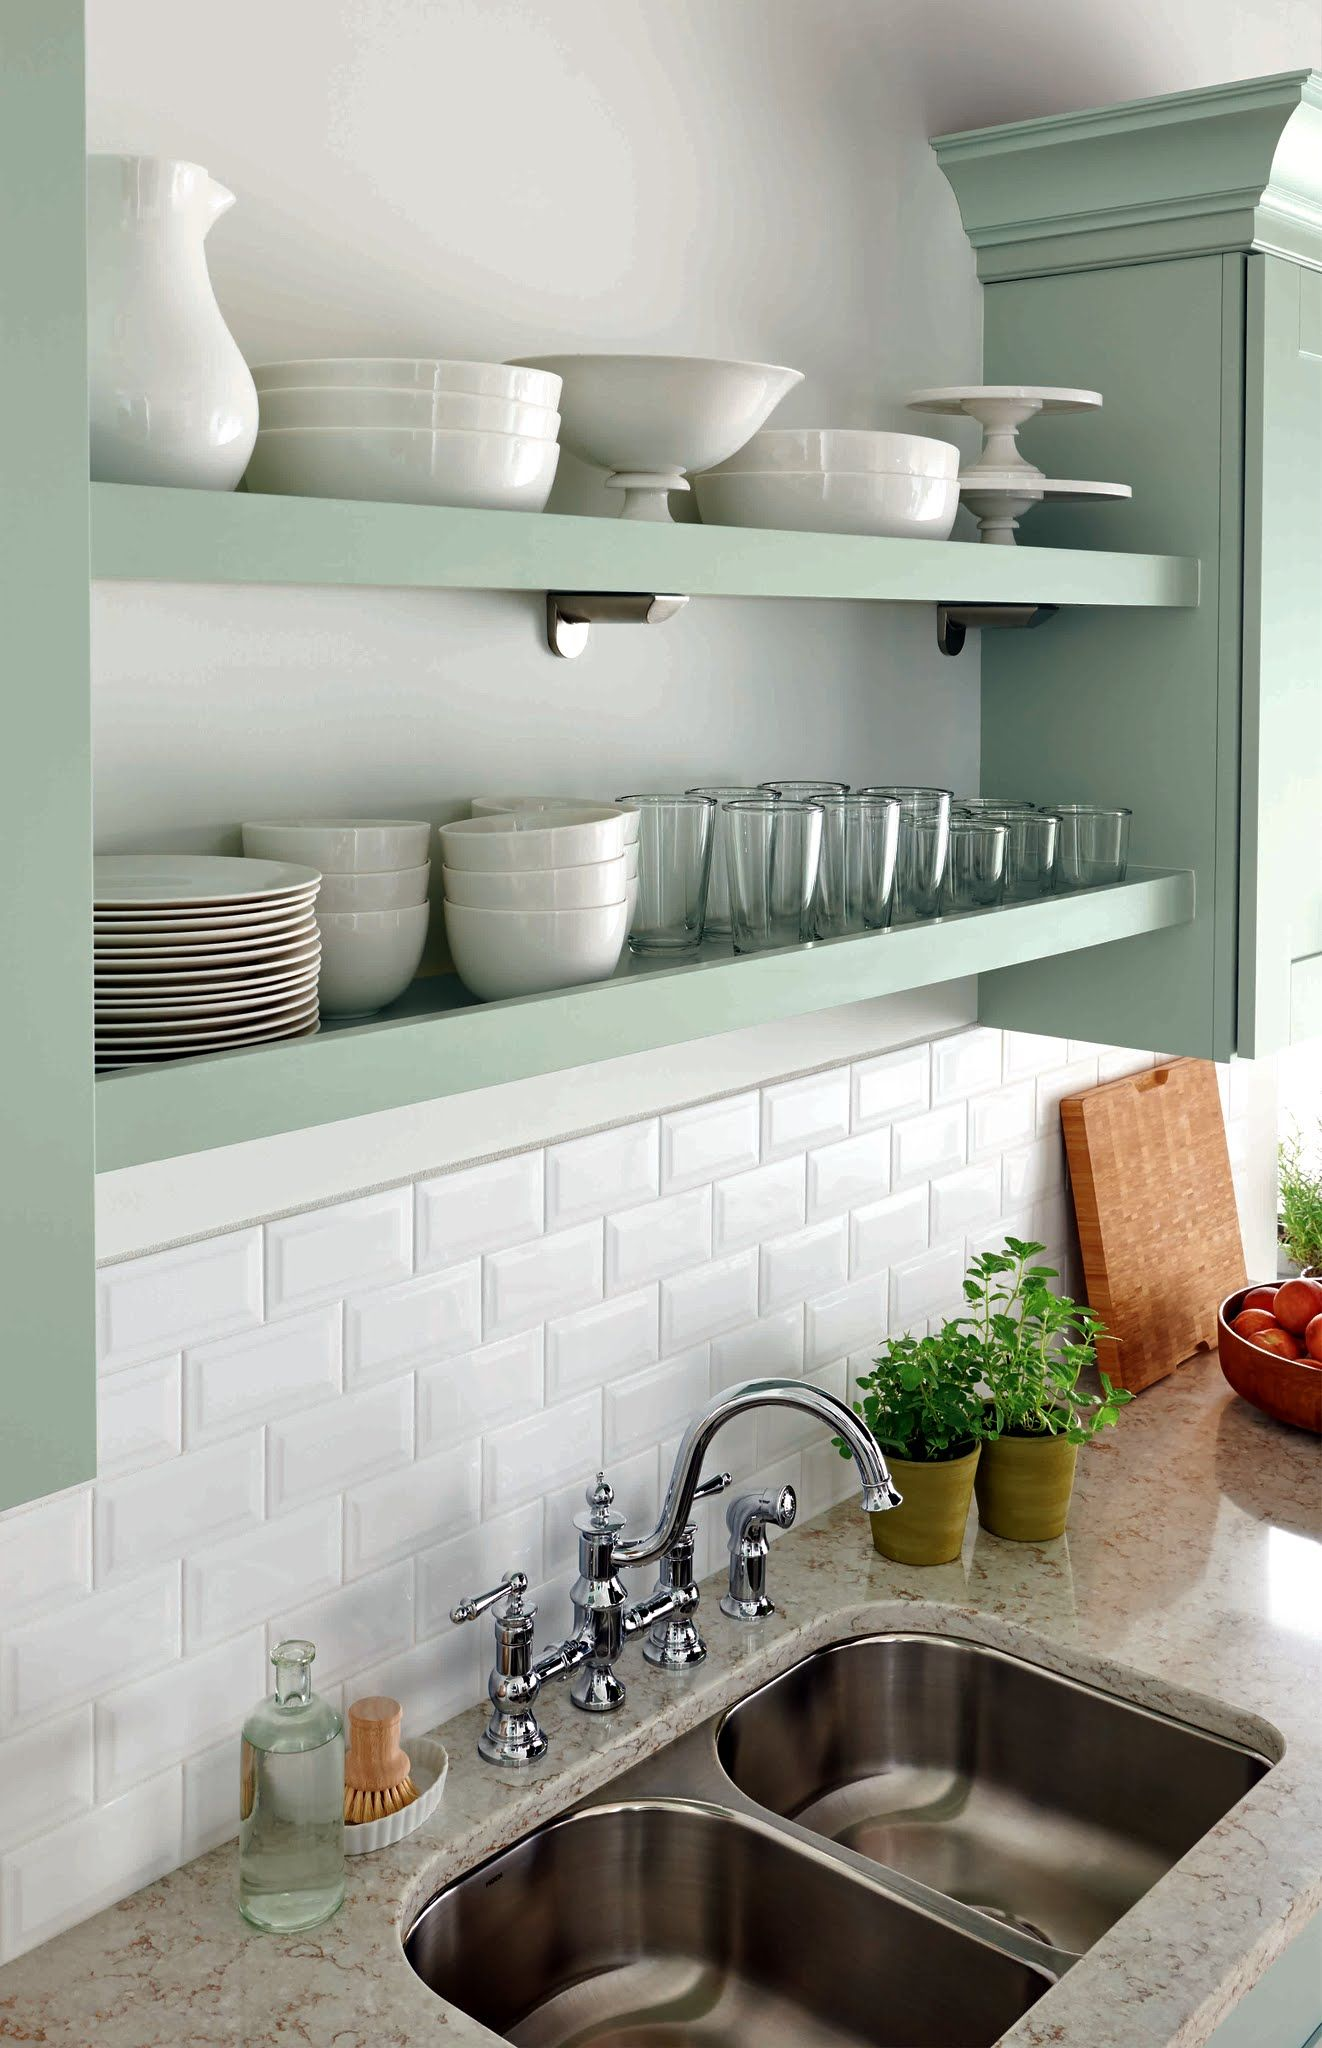 Combined With Shelf Supports Or Corbels These Clean Open Shelves Let You Create An Eye Catching Display Home Kitchens Kitchen Inspirations Kitchen Renovation